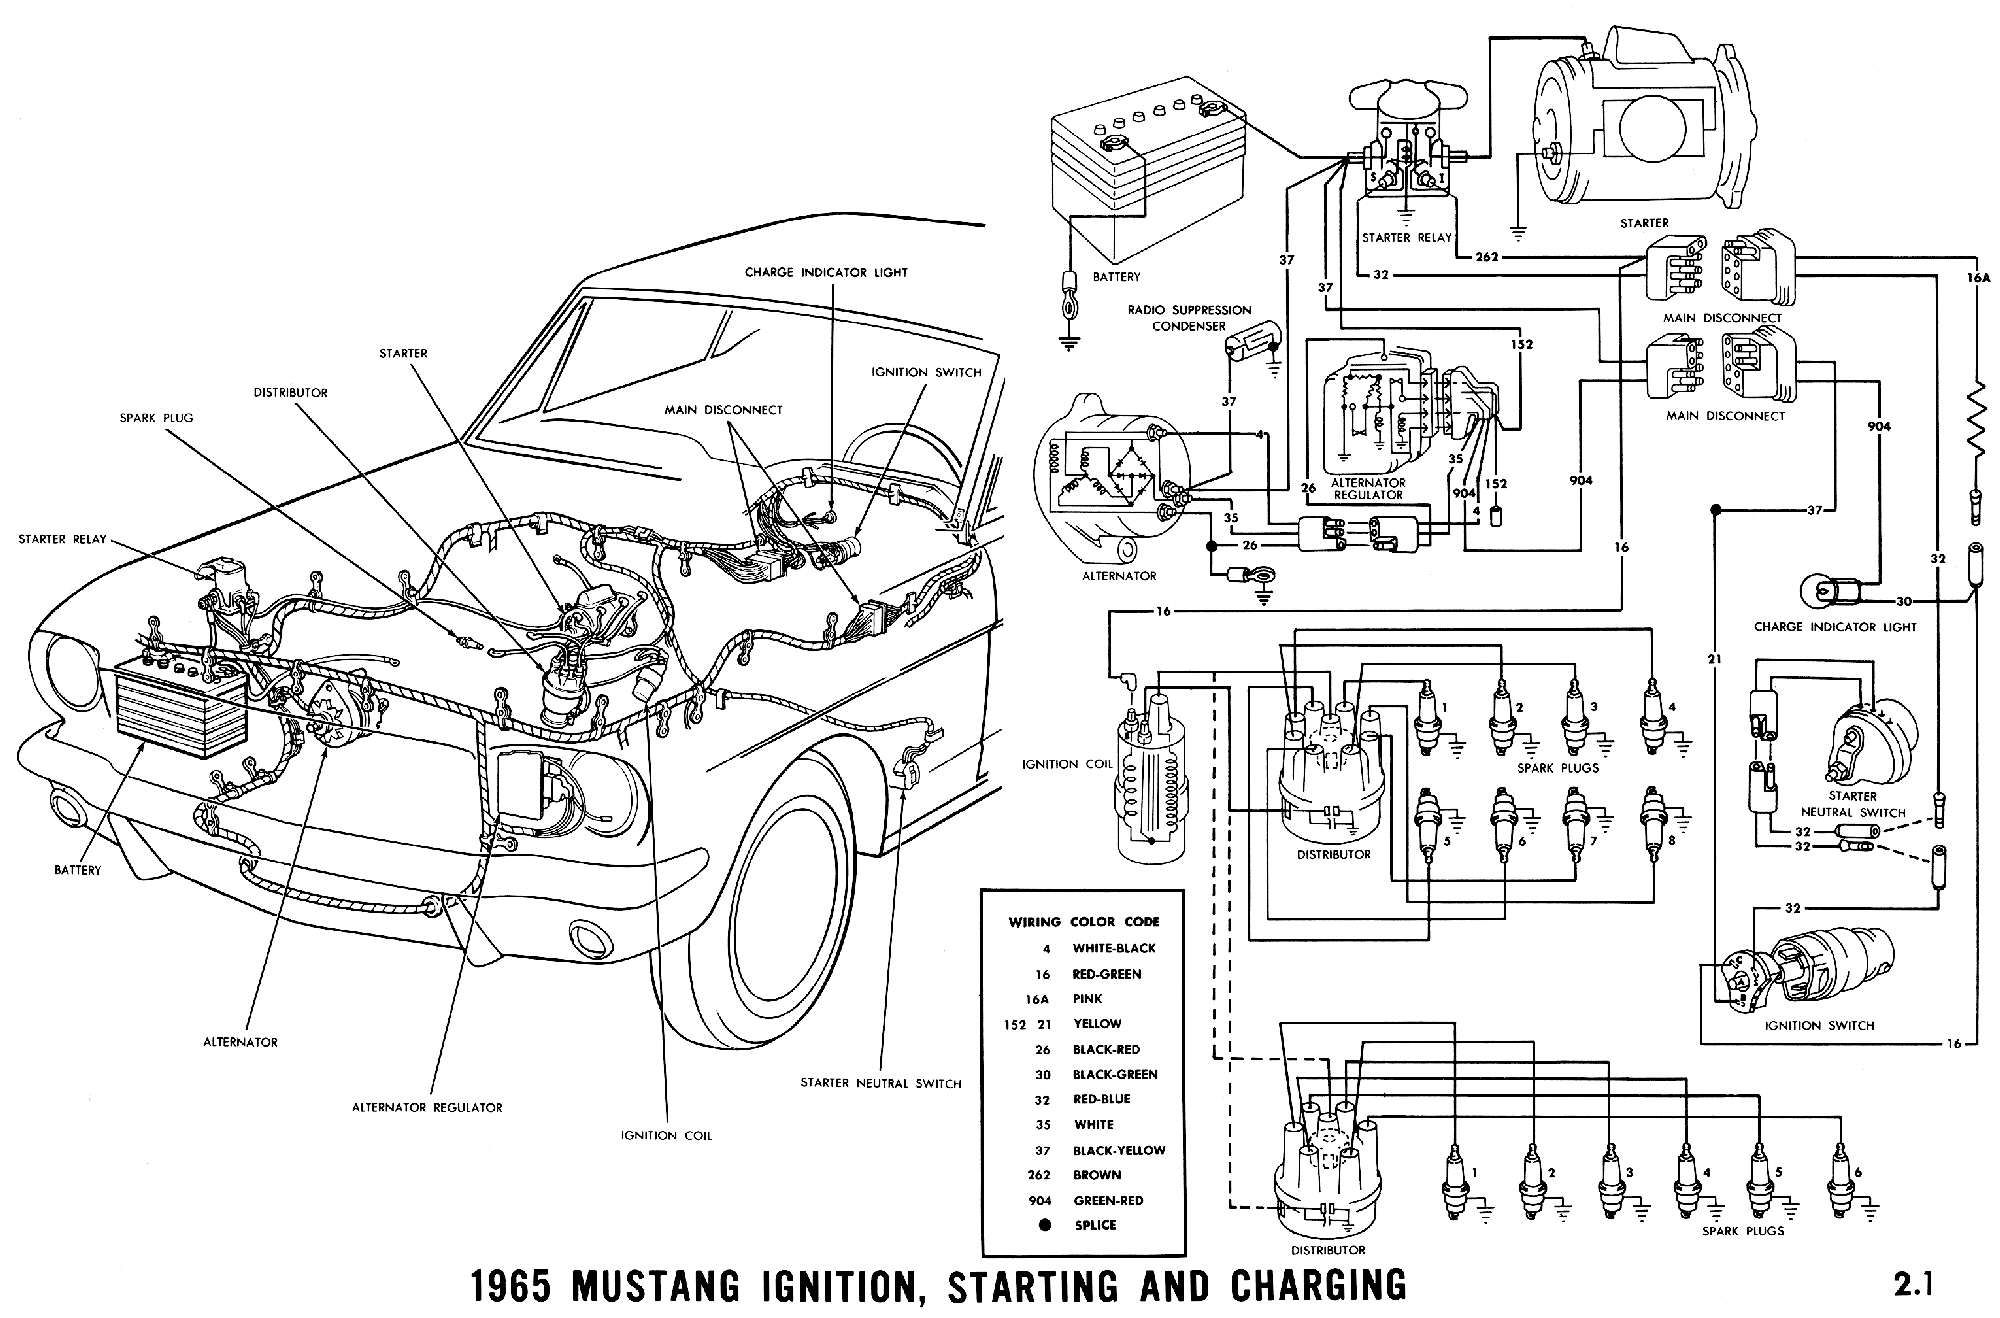 1965 mustang wiring diagrams average joe restoration mustang rh pinterest com